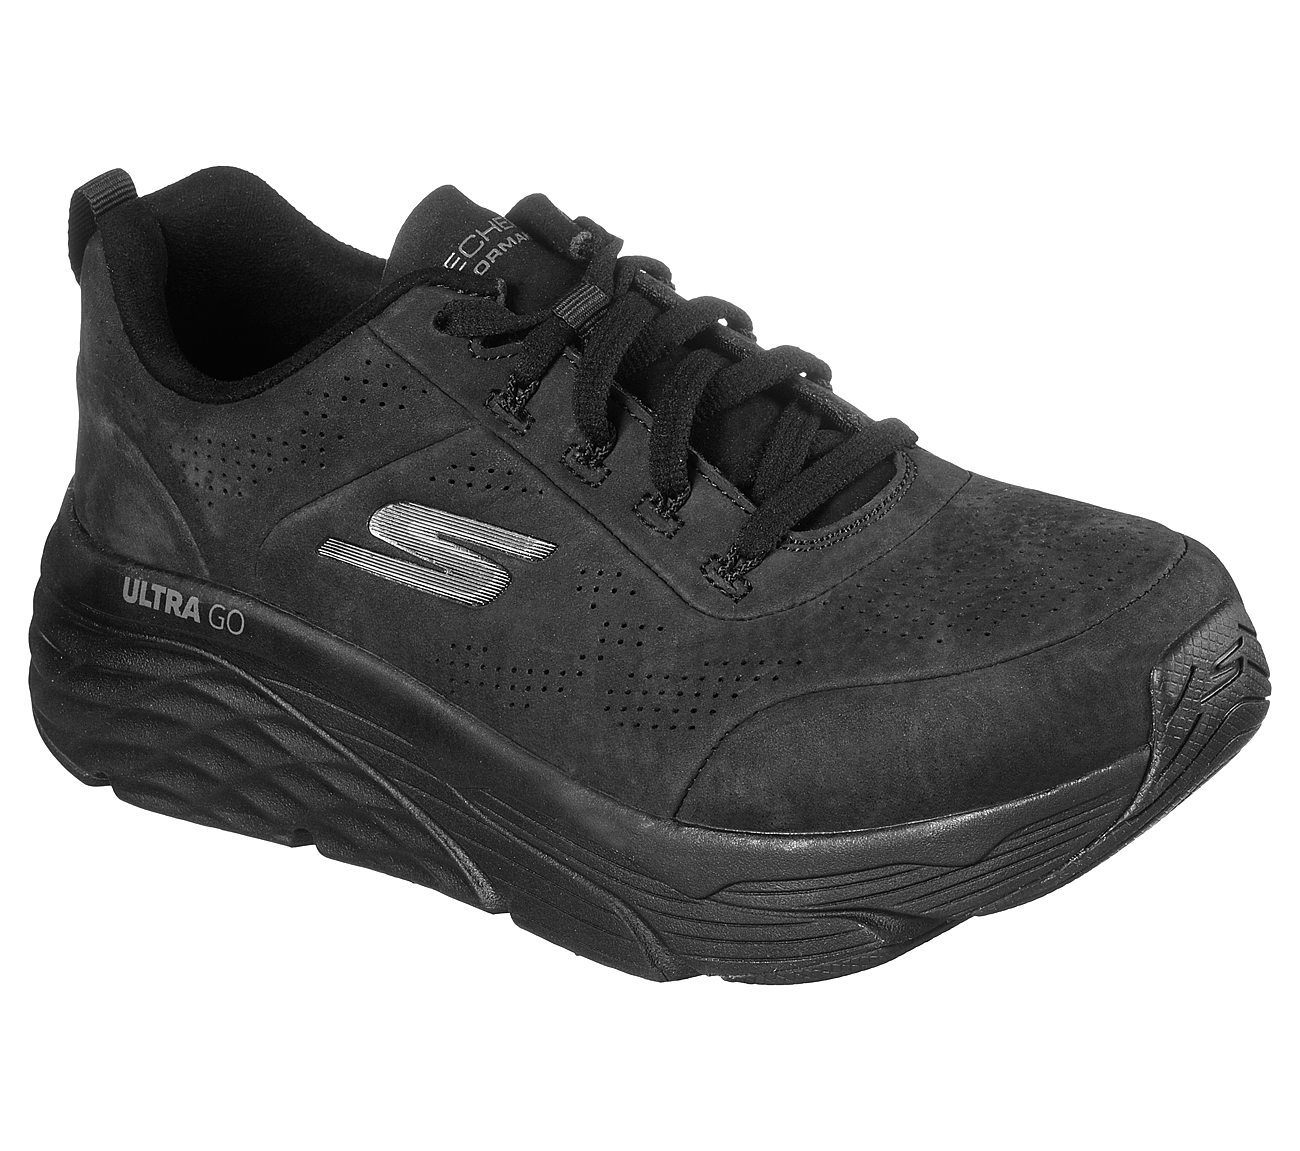 Higher View Skechers Max Cushioning Shoes